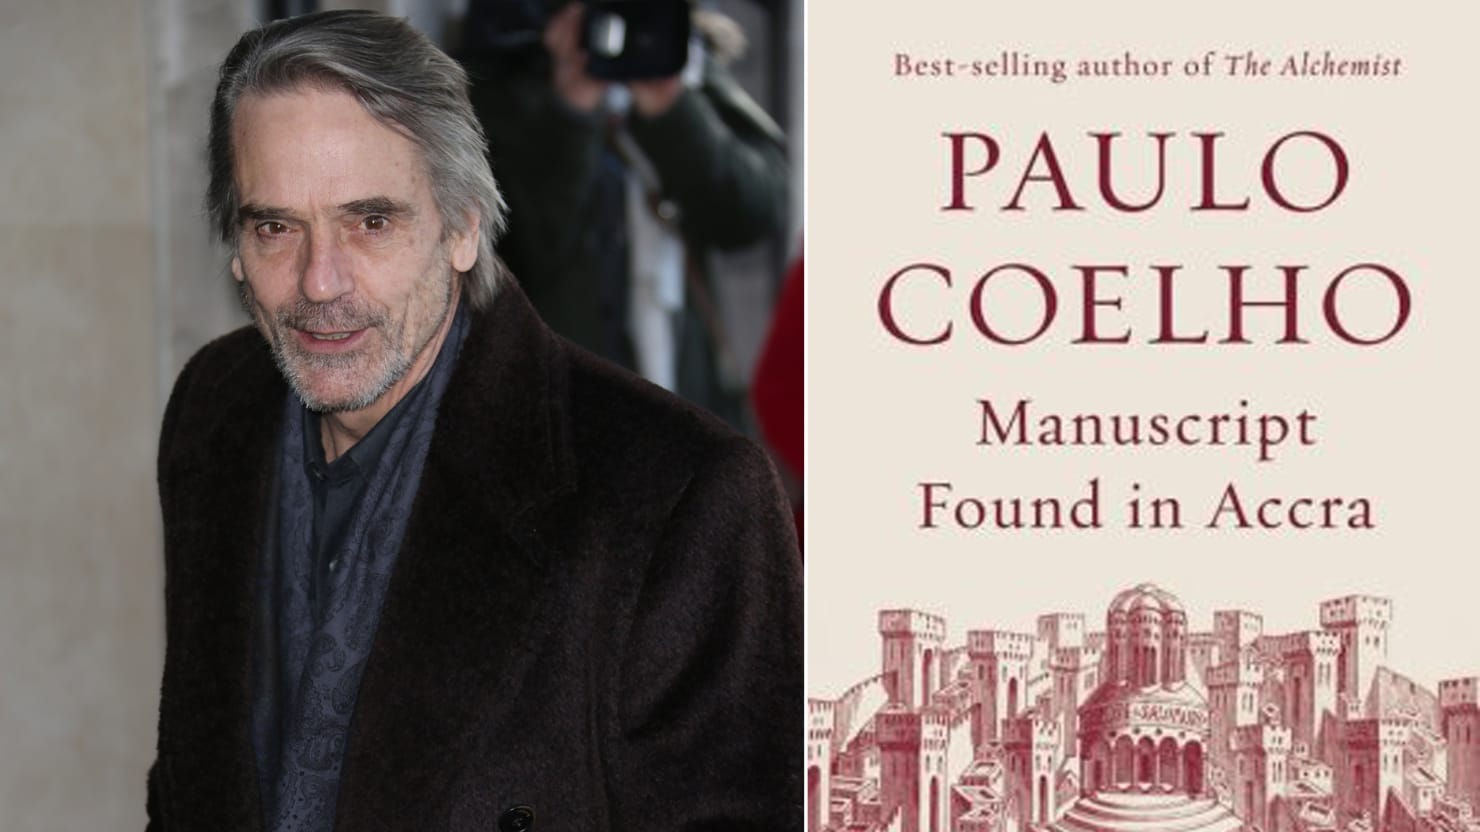 Jeremy Irons Reads from Paulo Coelho's New Book, 'Manuscript Found in Accra'